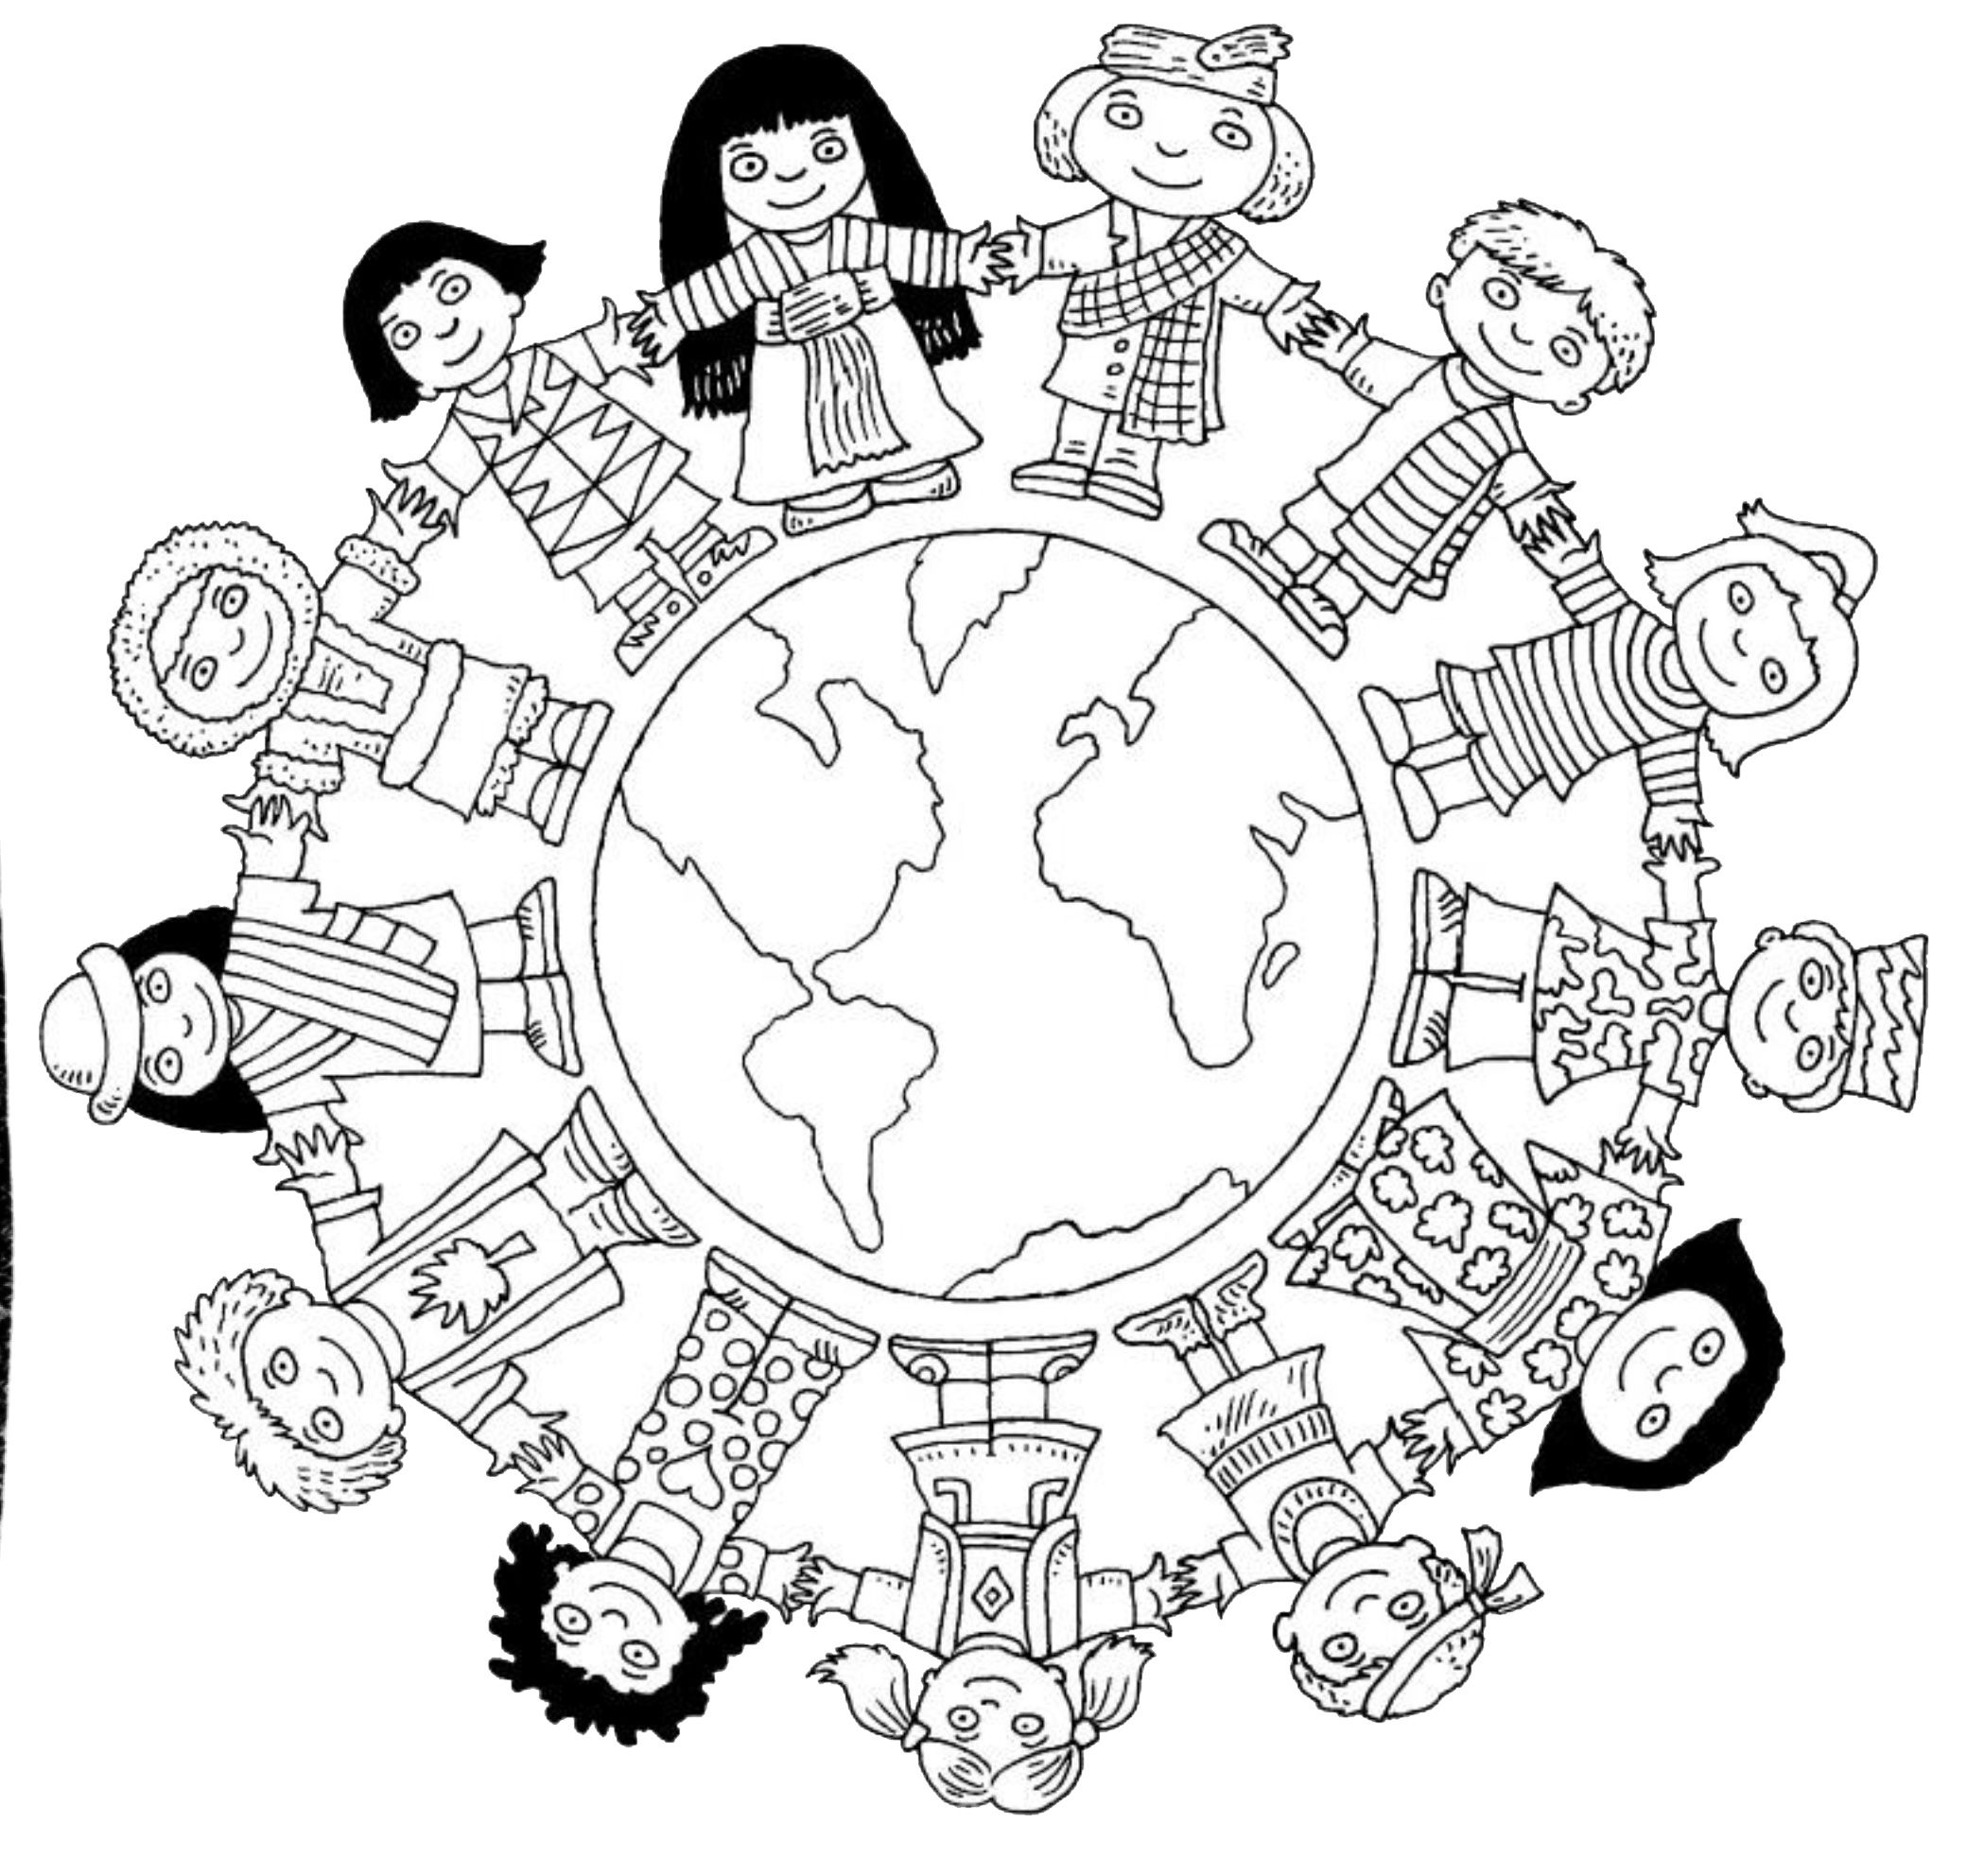 Children Around The World Coloring Page | Coloring pages ...